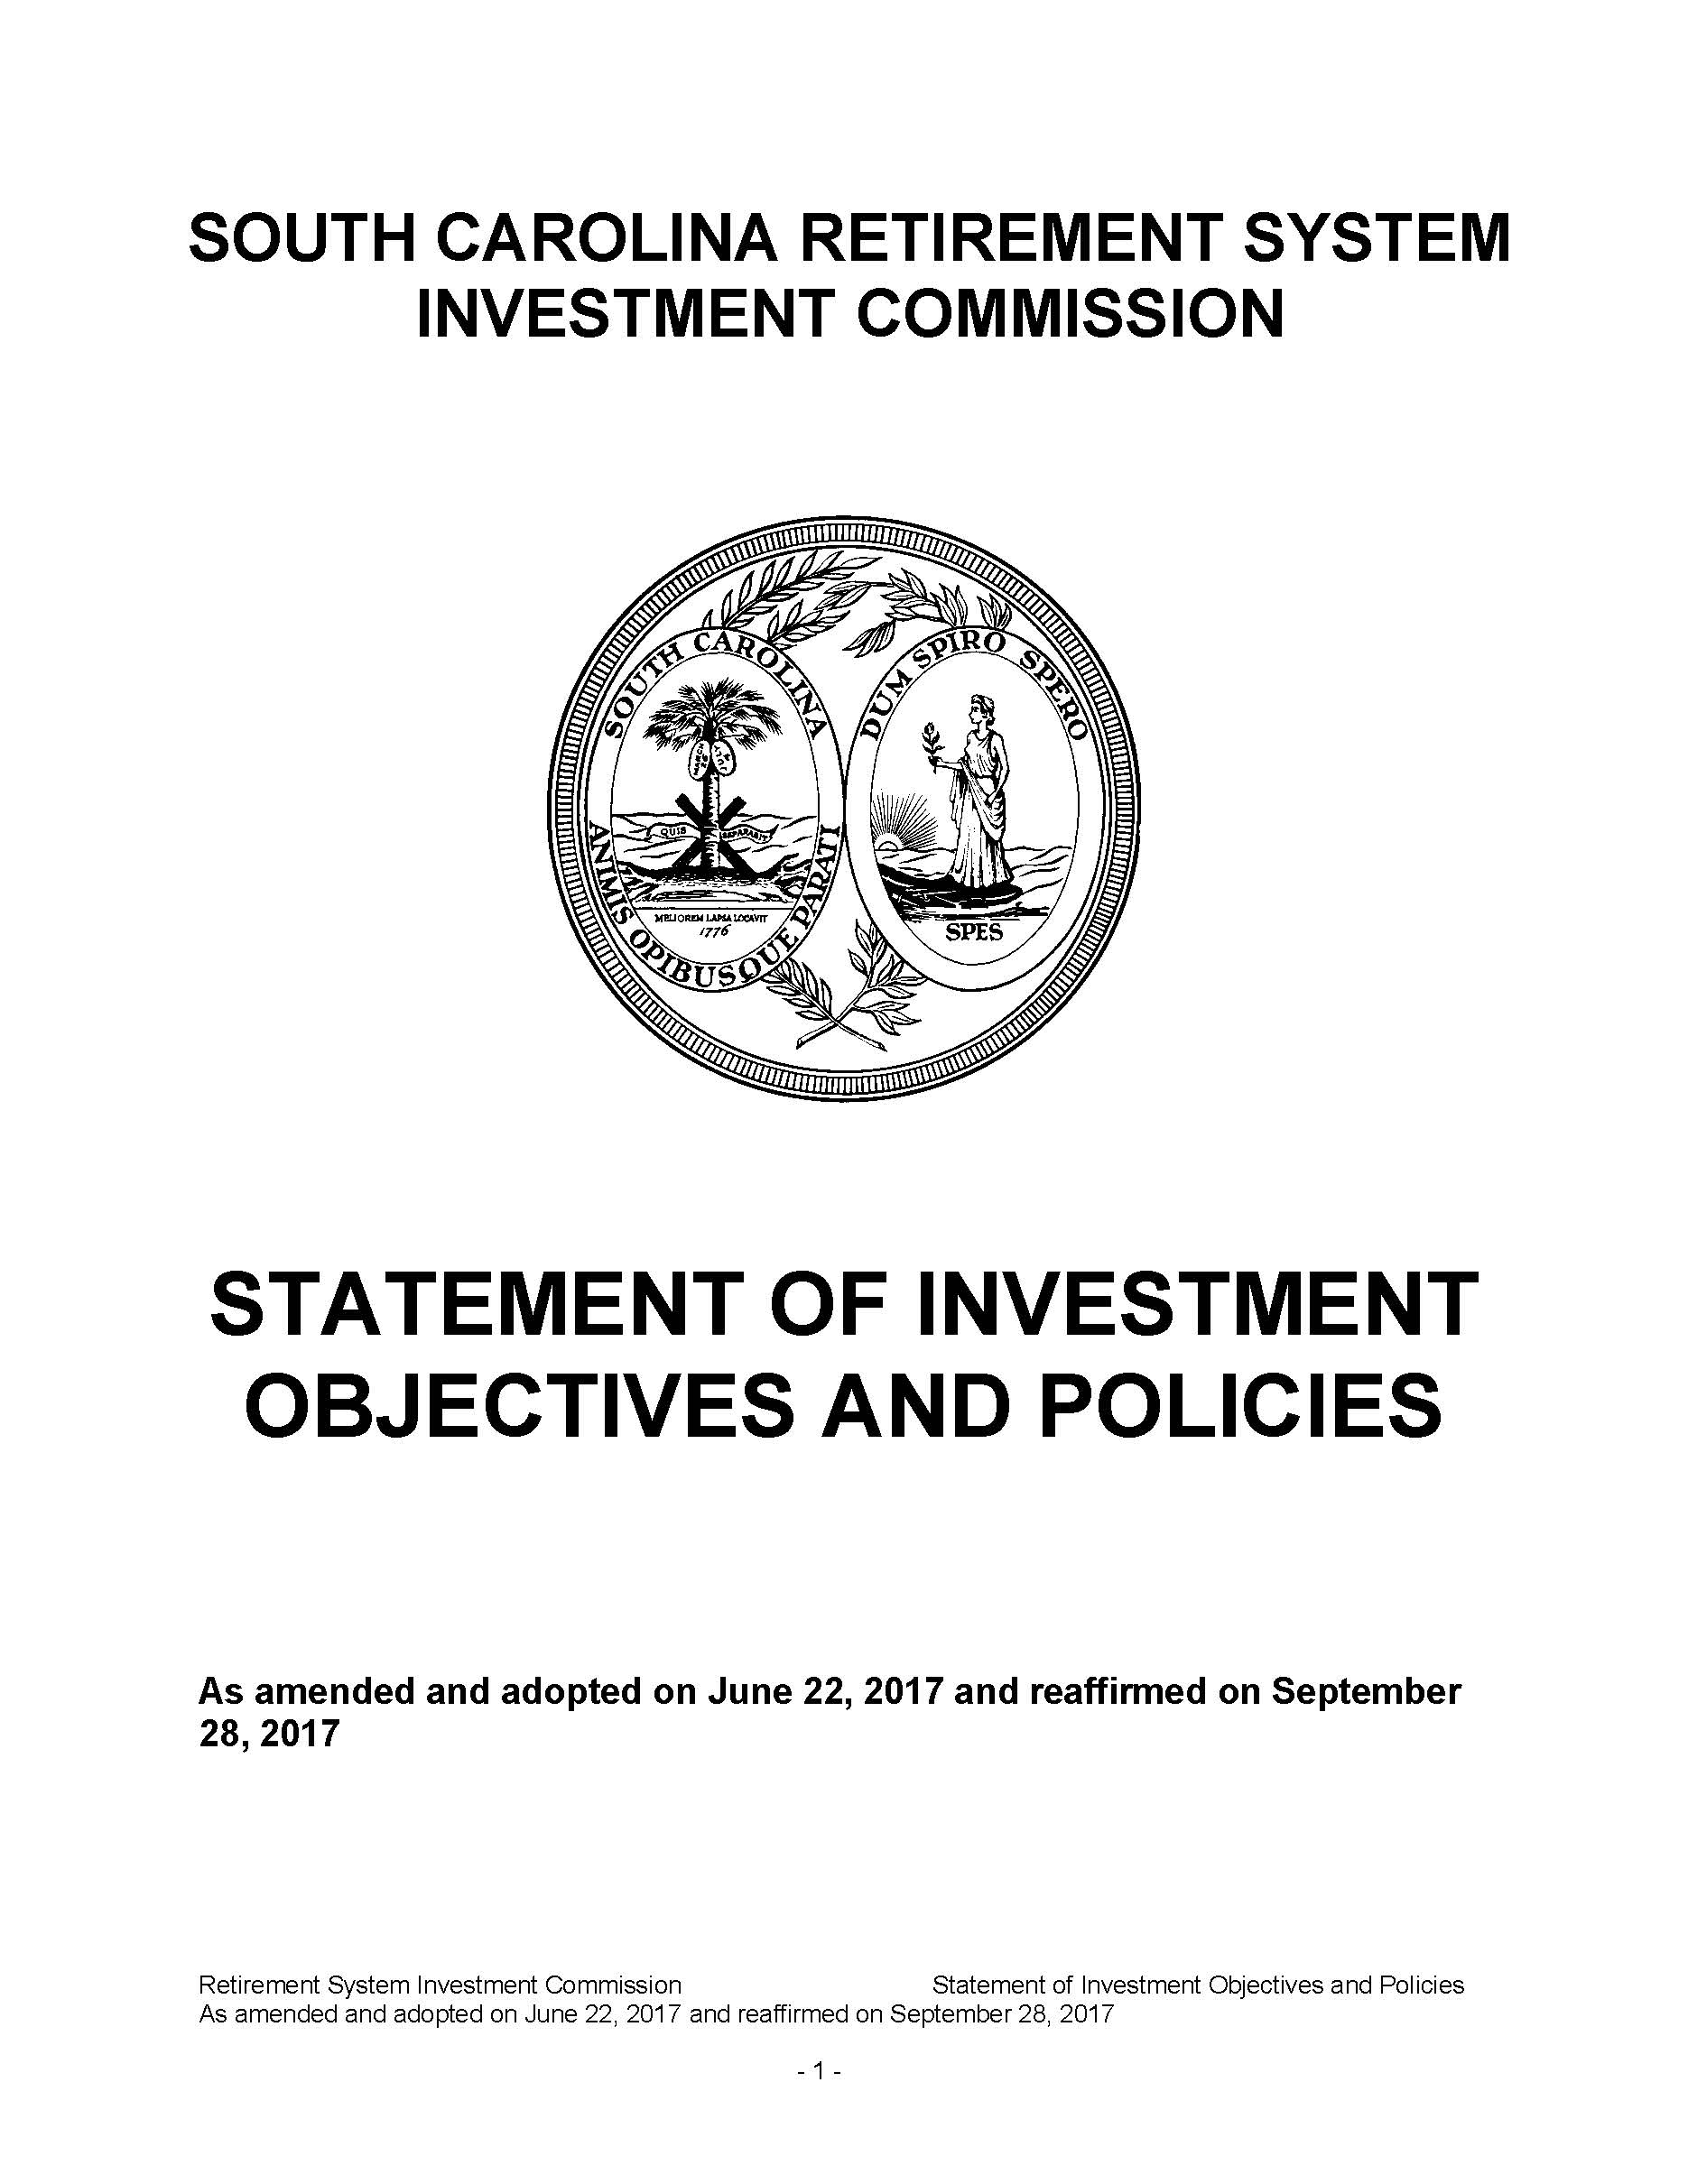 Statement of Investment Objectives and Policies